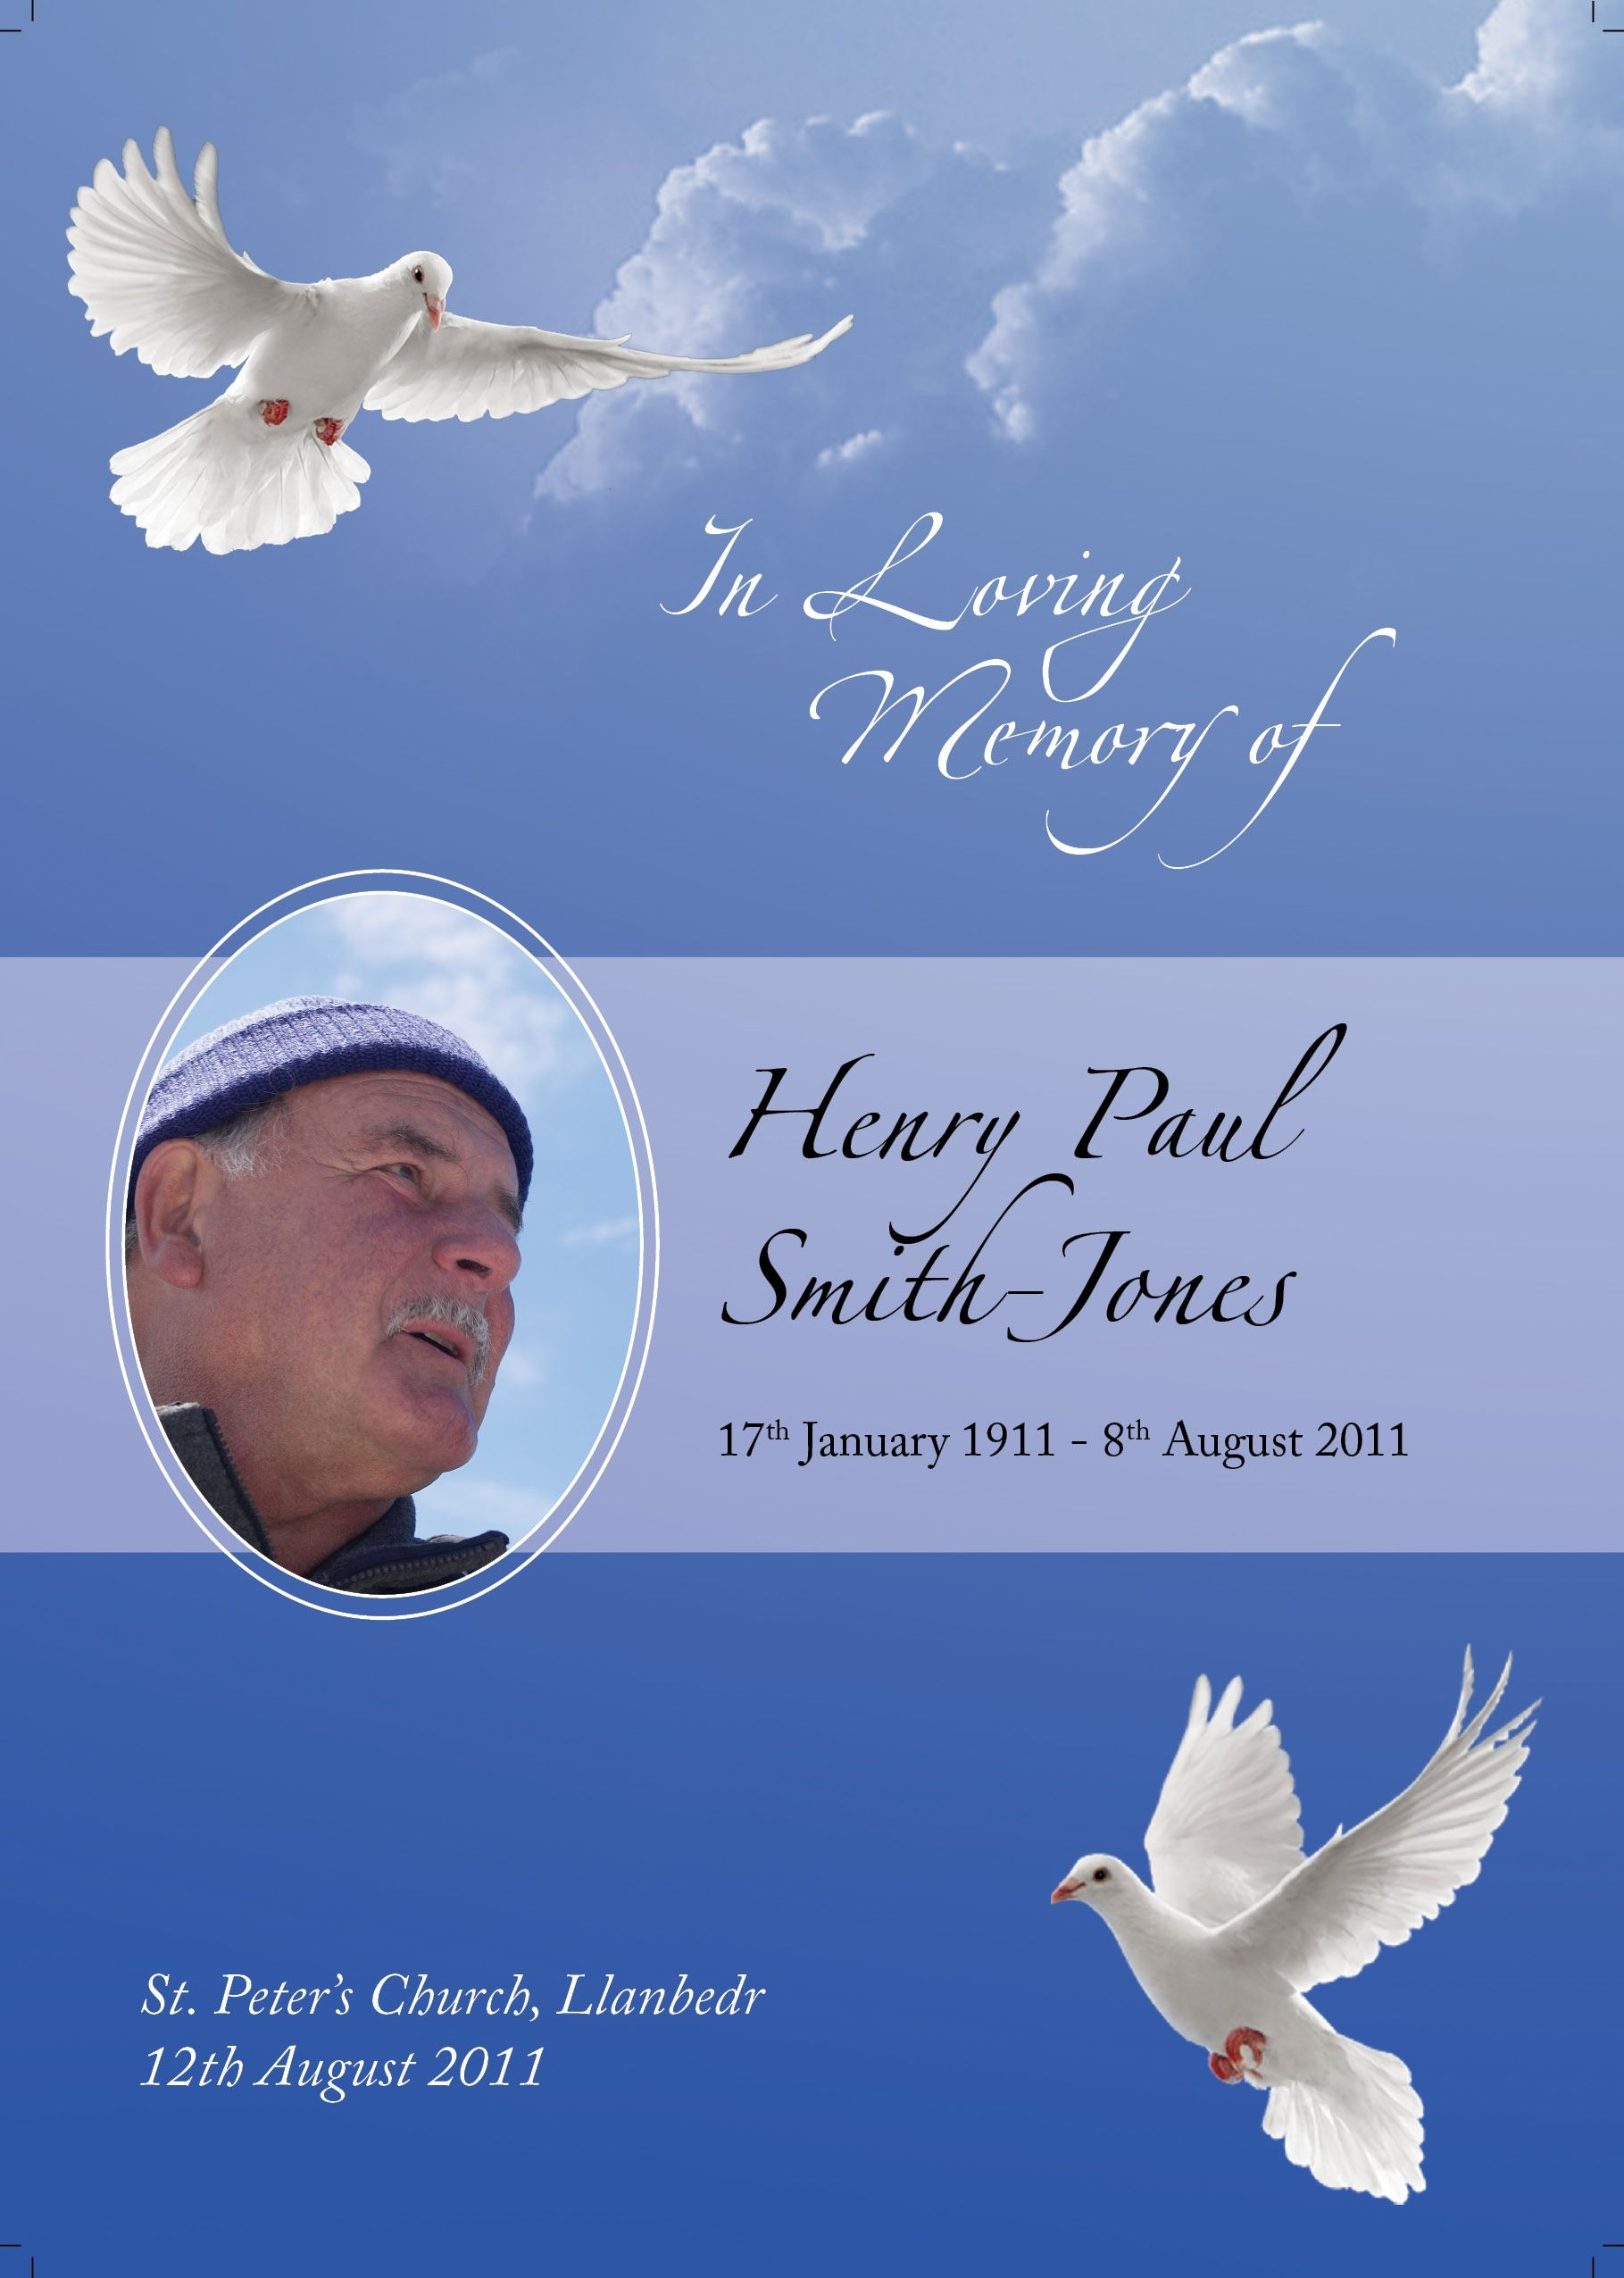 Pin Neil Zaltsman On Order Of Service Funeral Order Of Service